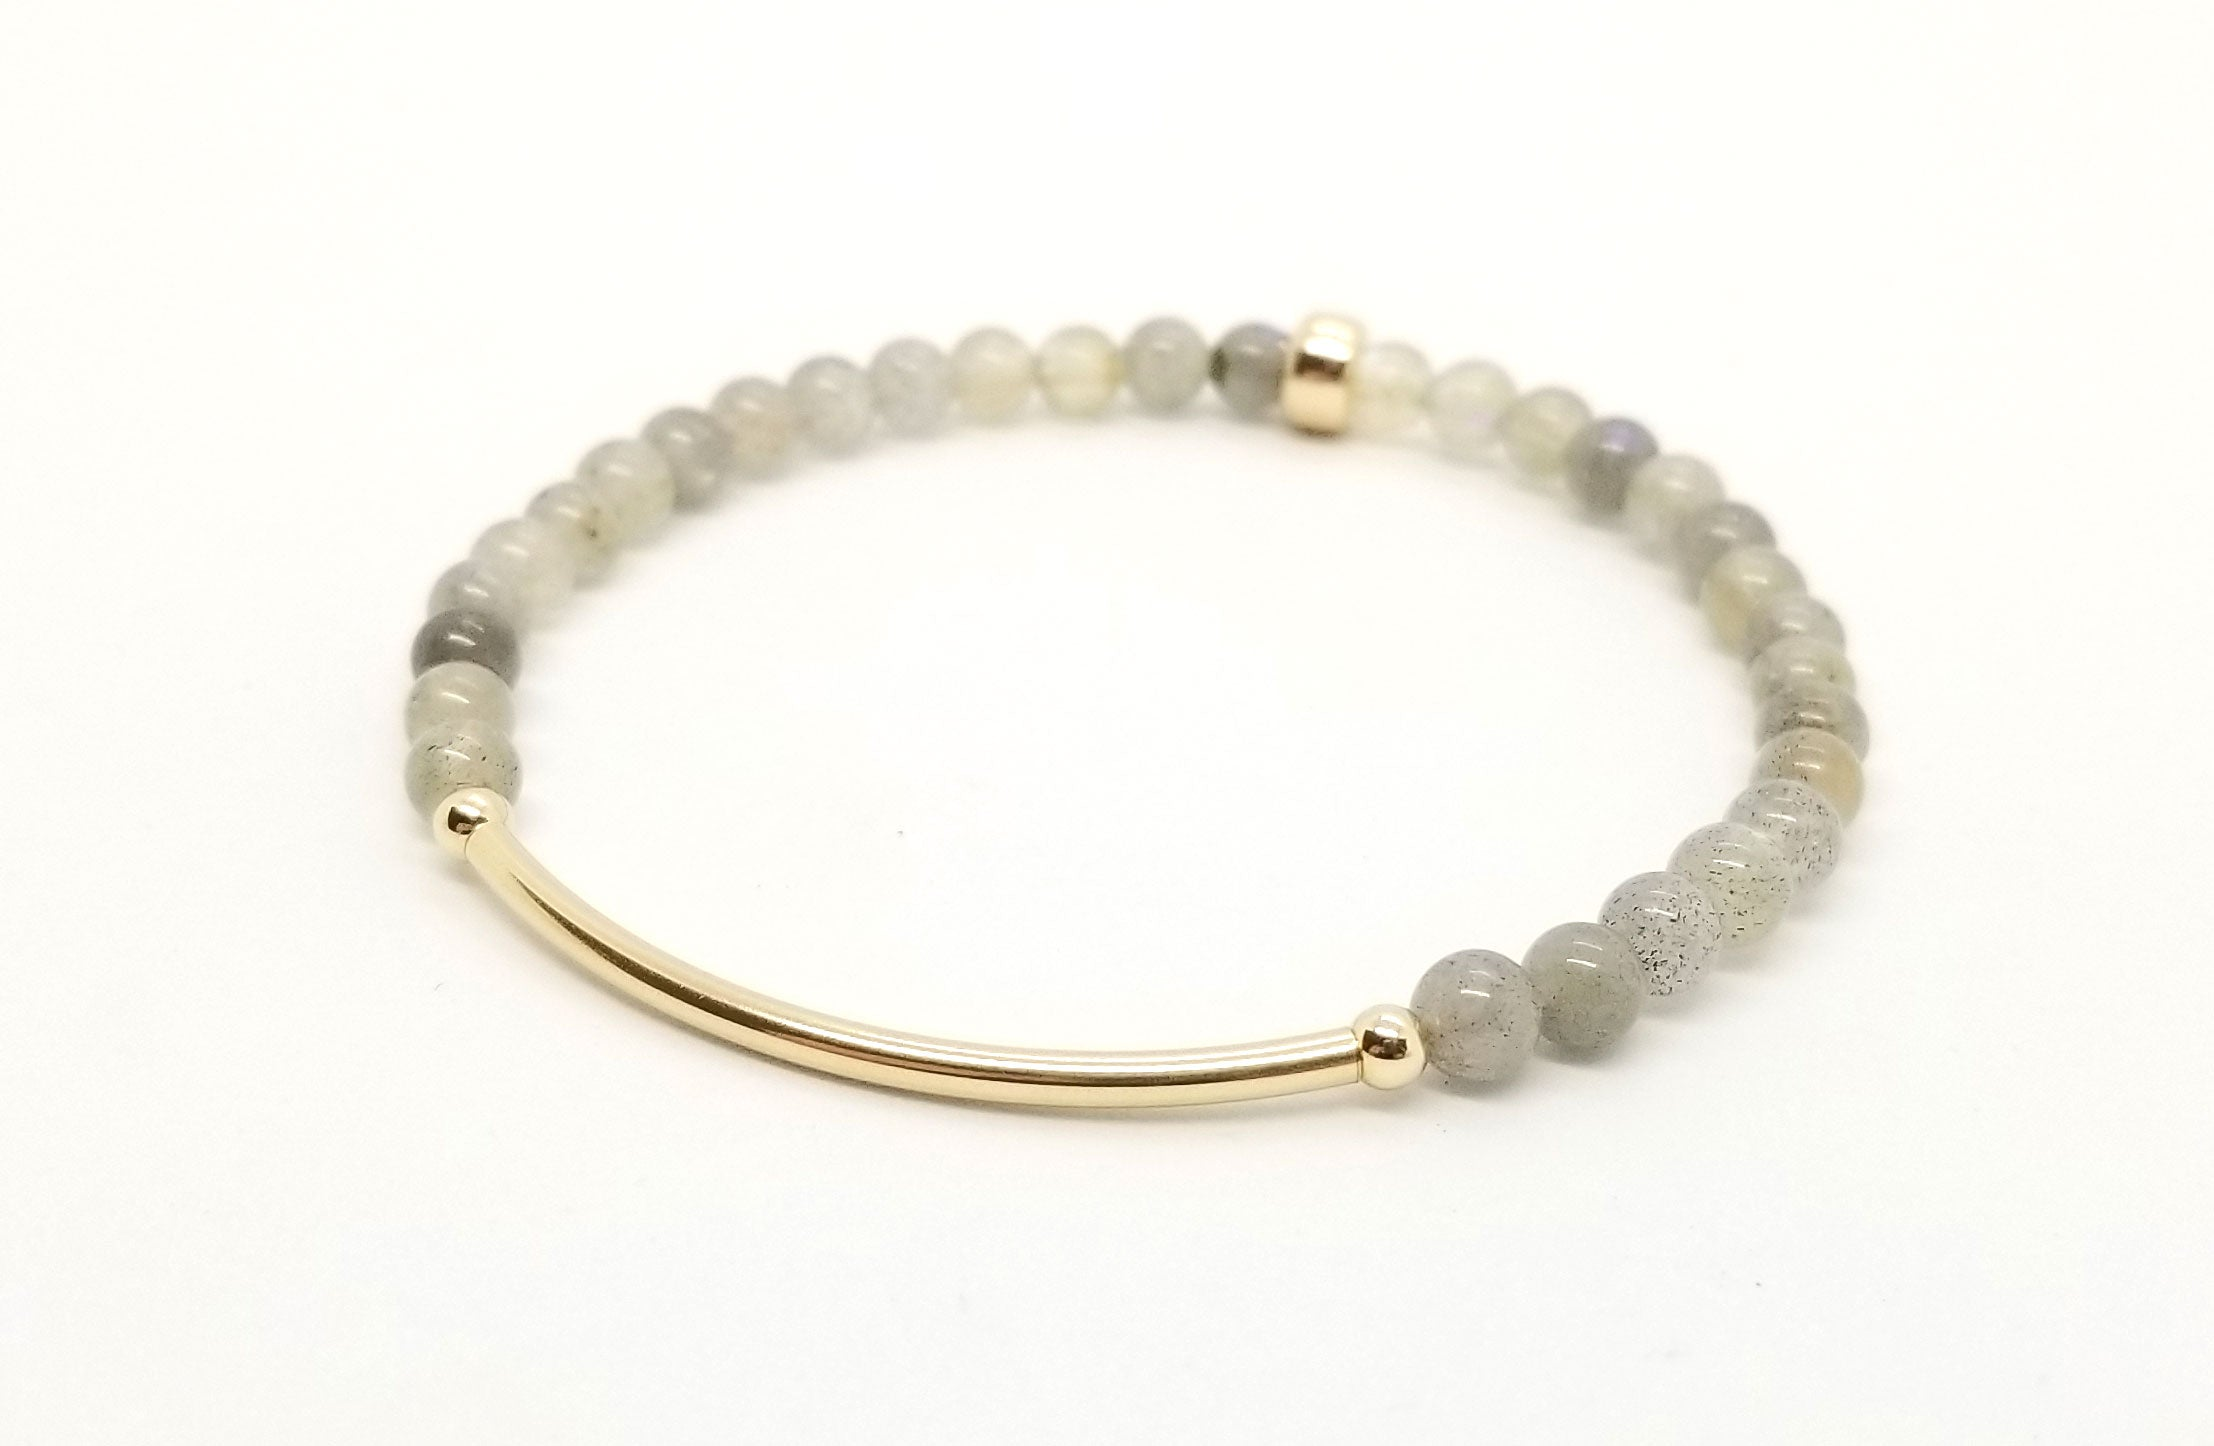 4mm Labradorite Gold Bar Bracelet